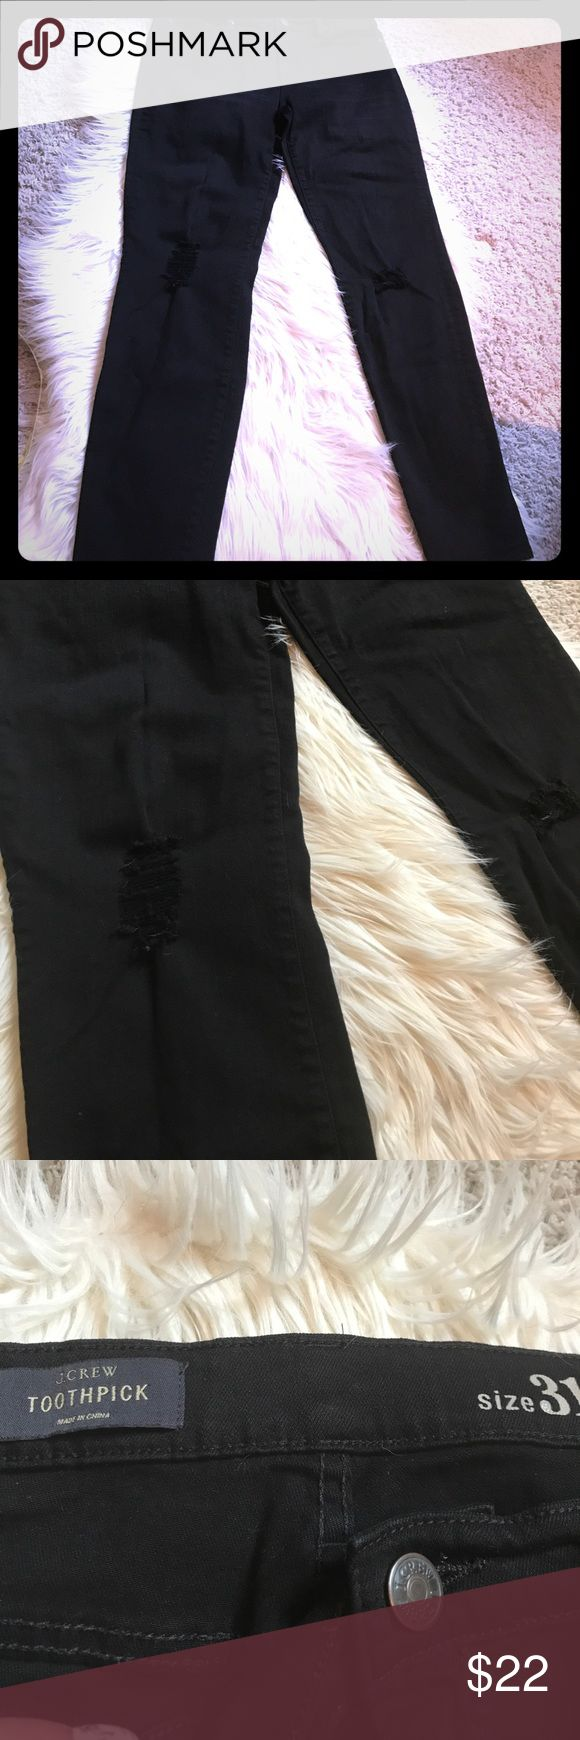 "J Crew toothpick black jeans J crew skinny jeans with ""destructed"" fraying at knee area.  Worn once. Perfect condition. Can be worn as a legging look! Super soft and stretchy. J Crew Jeans Skinny"